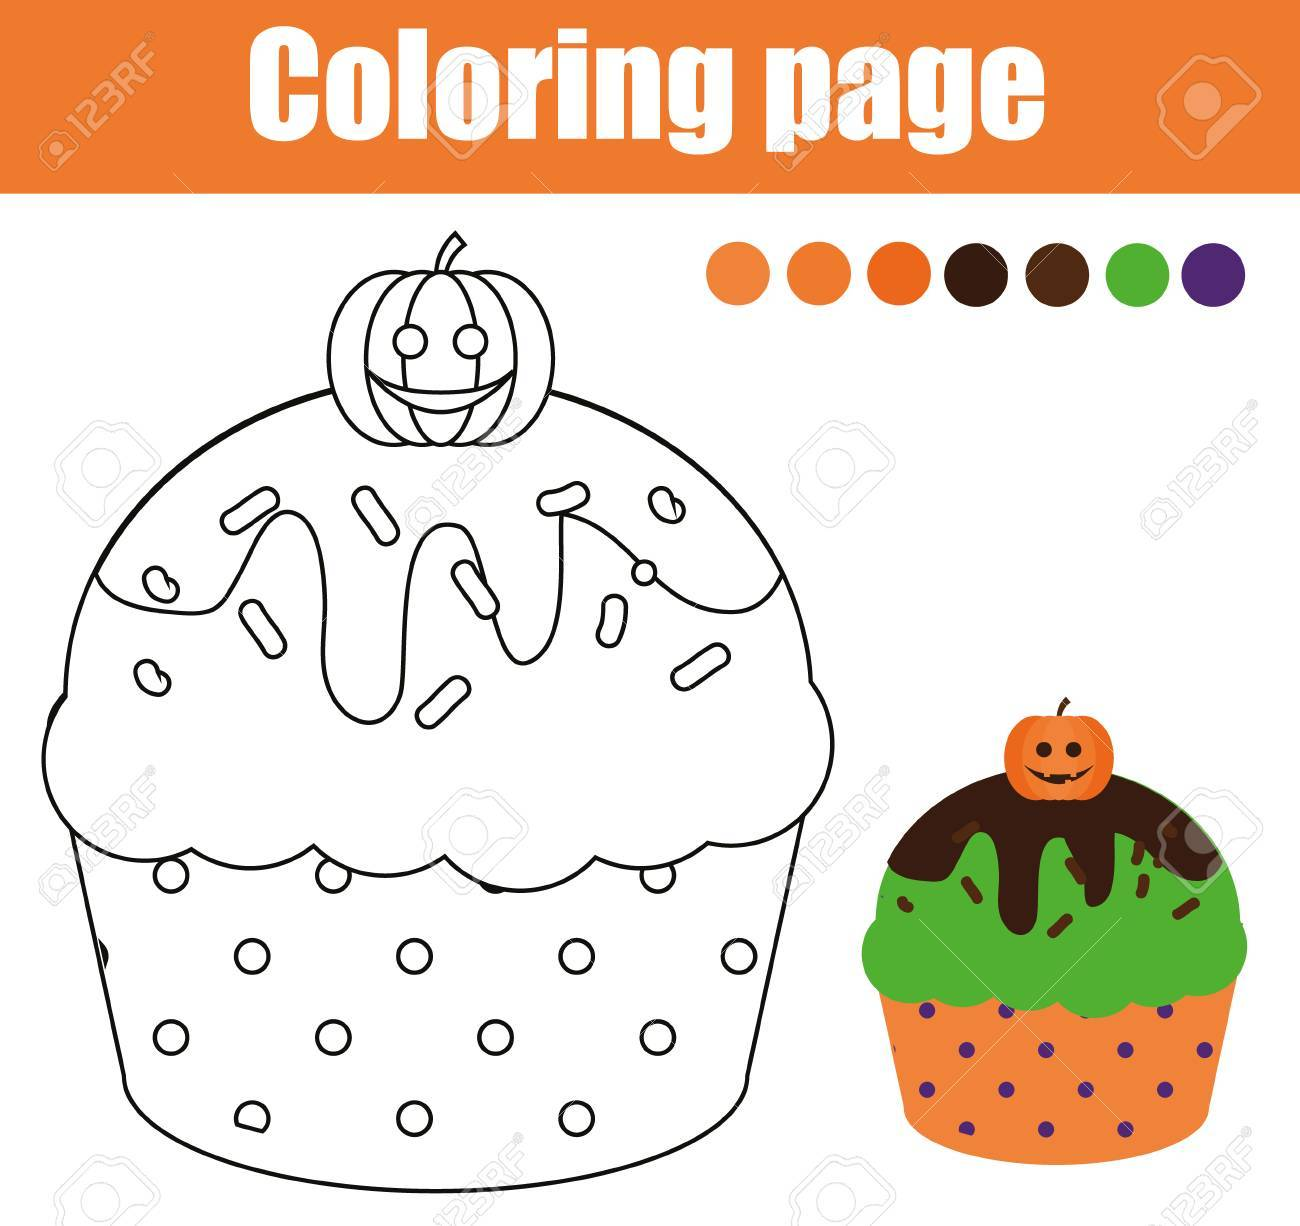 coloring page with halloween cupcake drawing kids activity printable sheet